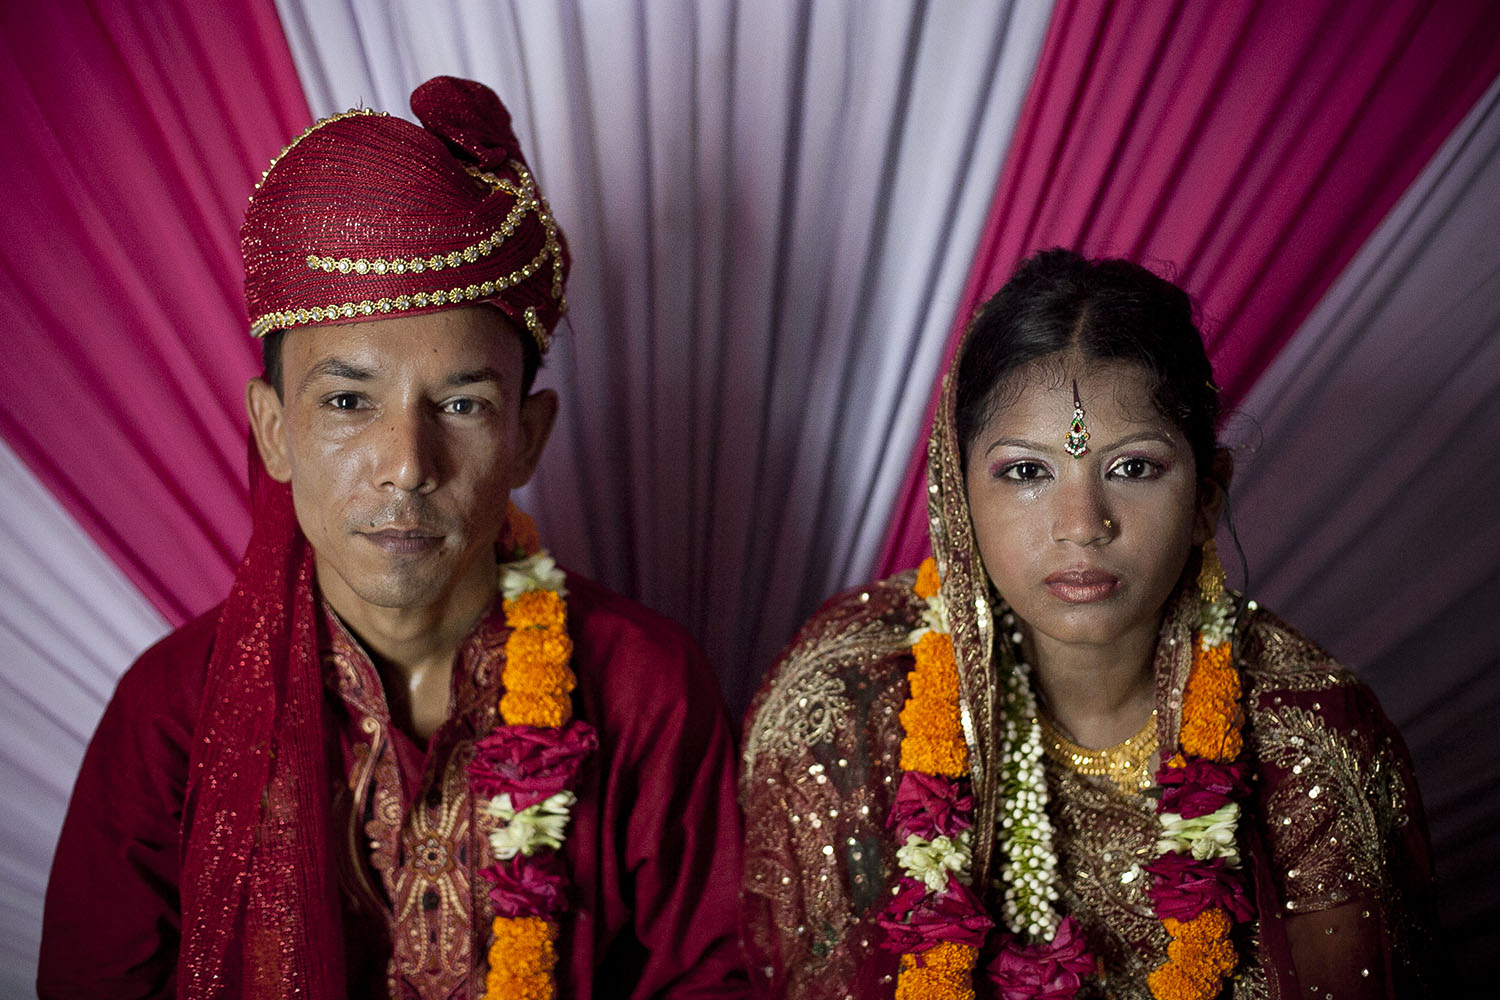 13 year old Runa Akhter sits next to her husband, 29 year old Zahrul Haque Kajal, the day of her wedding,